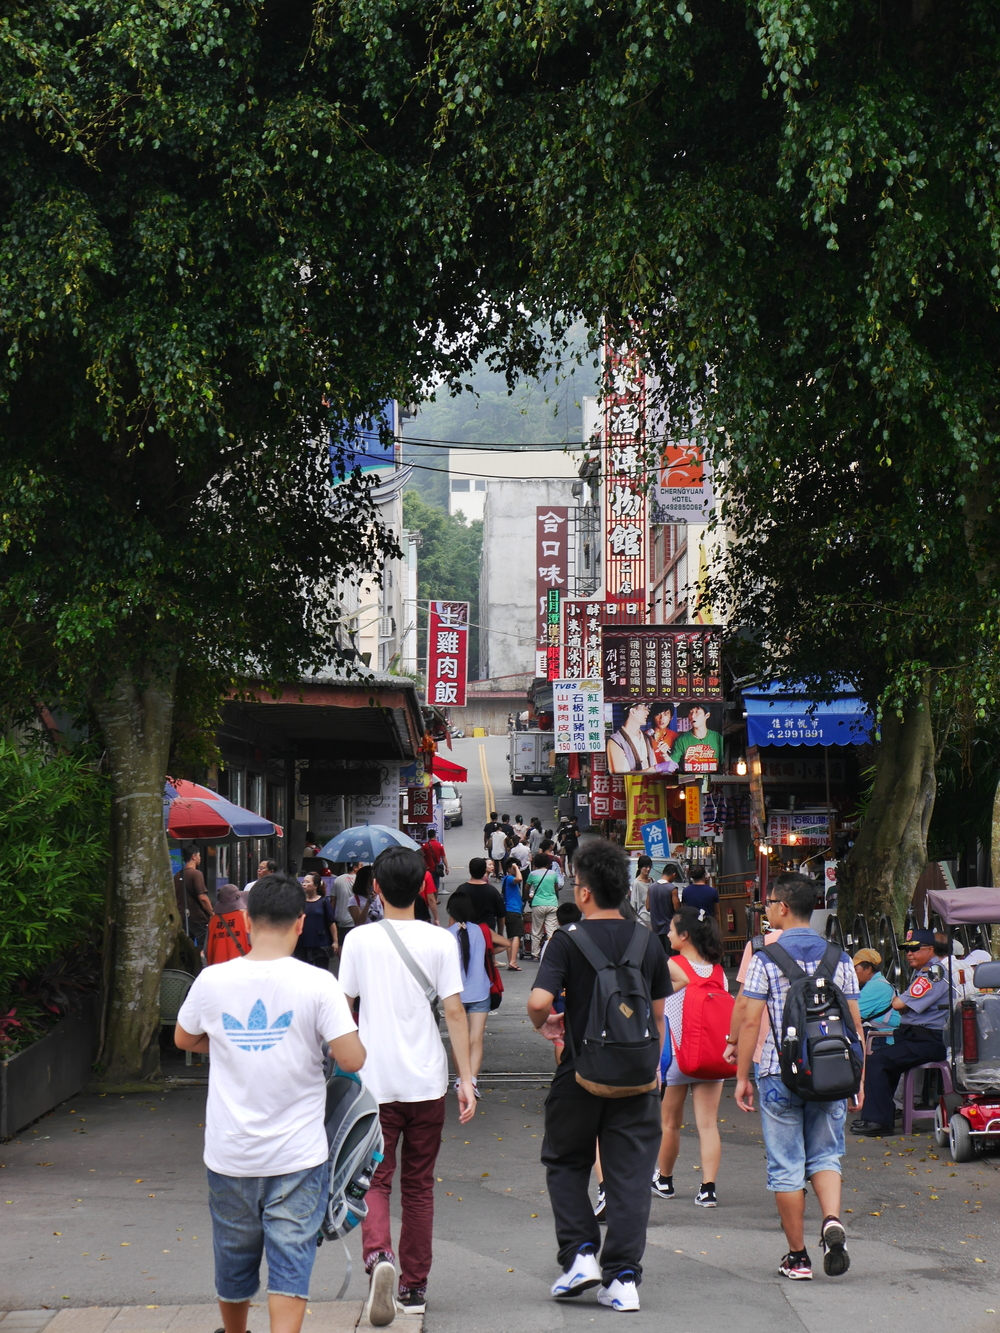 Looking up one of the streets. Lots of vendors catering to tourists.